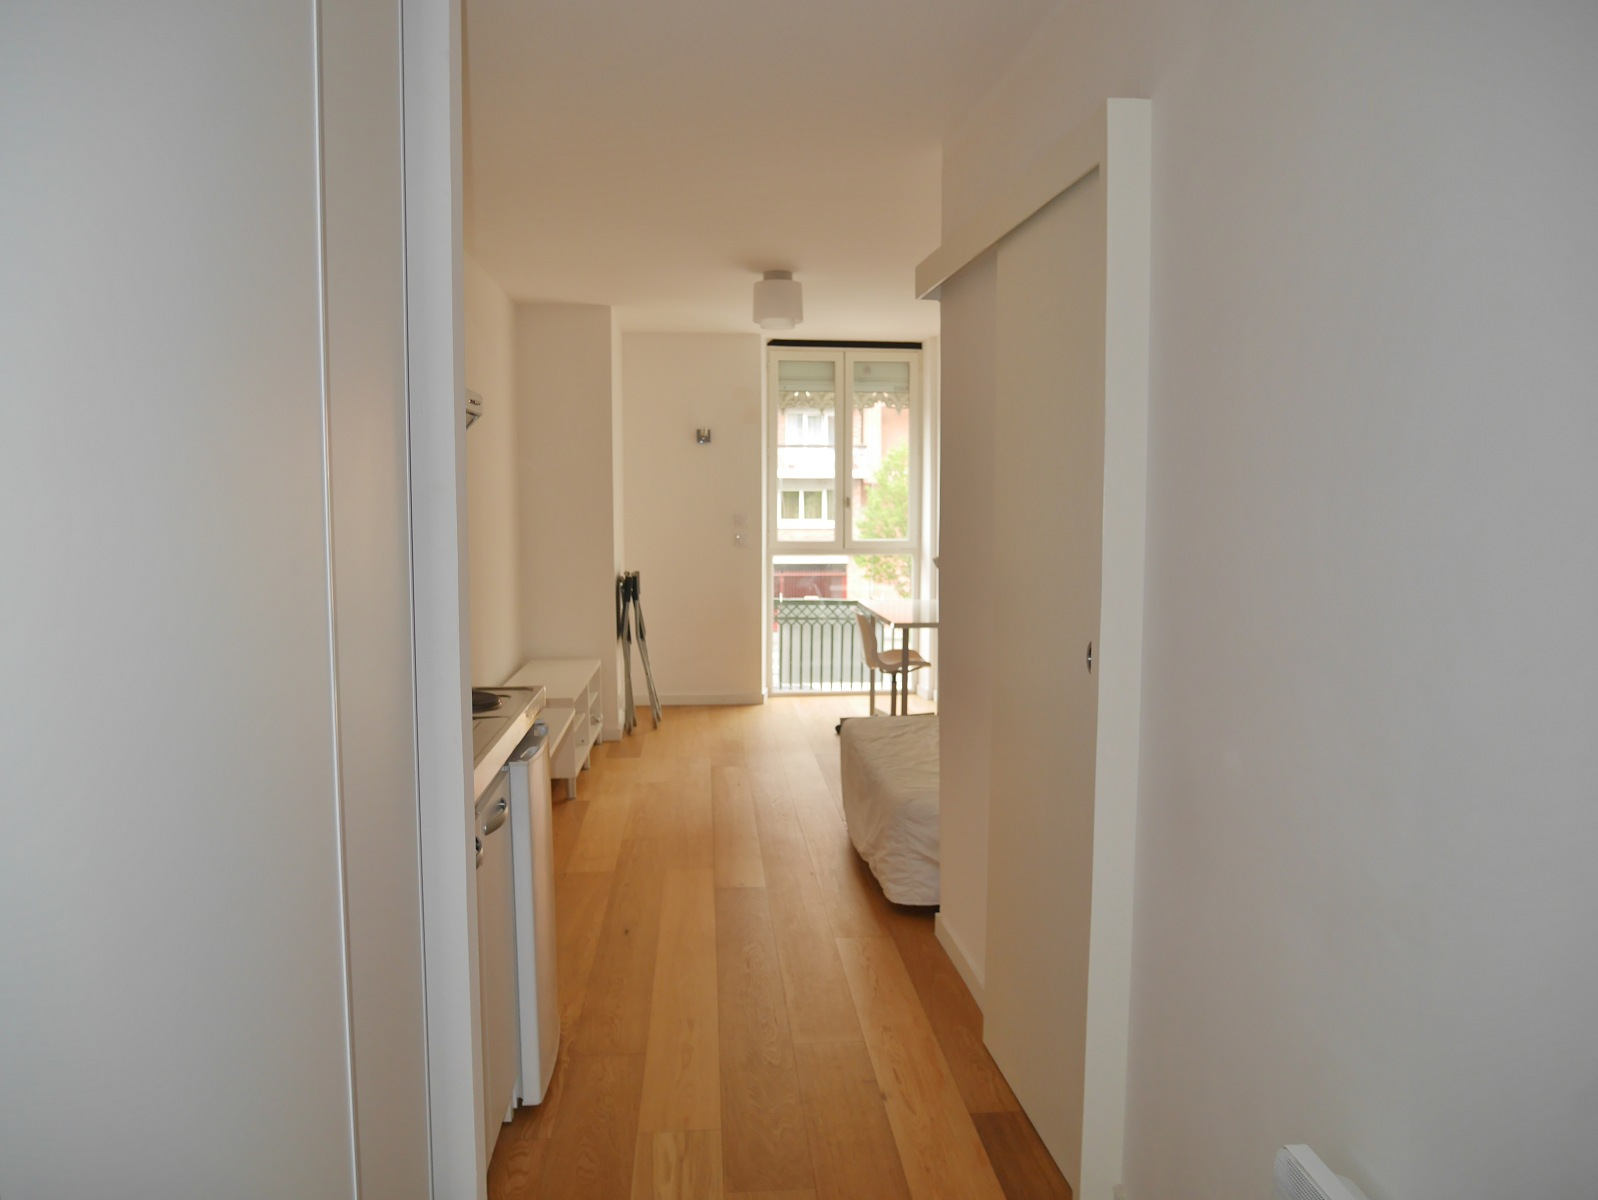 Location Appartement Meuble Toulouse Of Location Appartement Toulouse Vos Exigences De Recherche